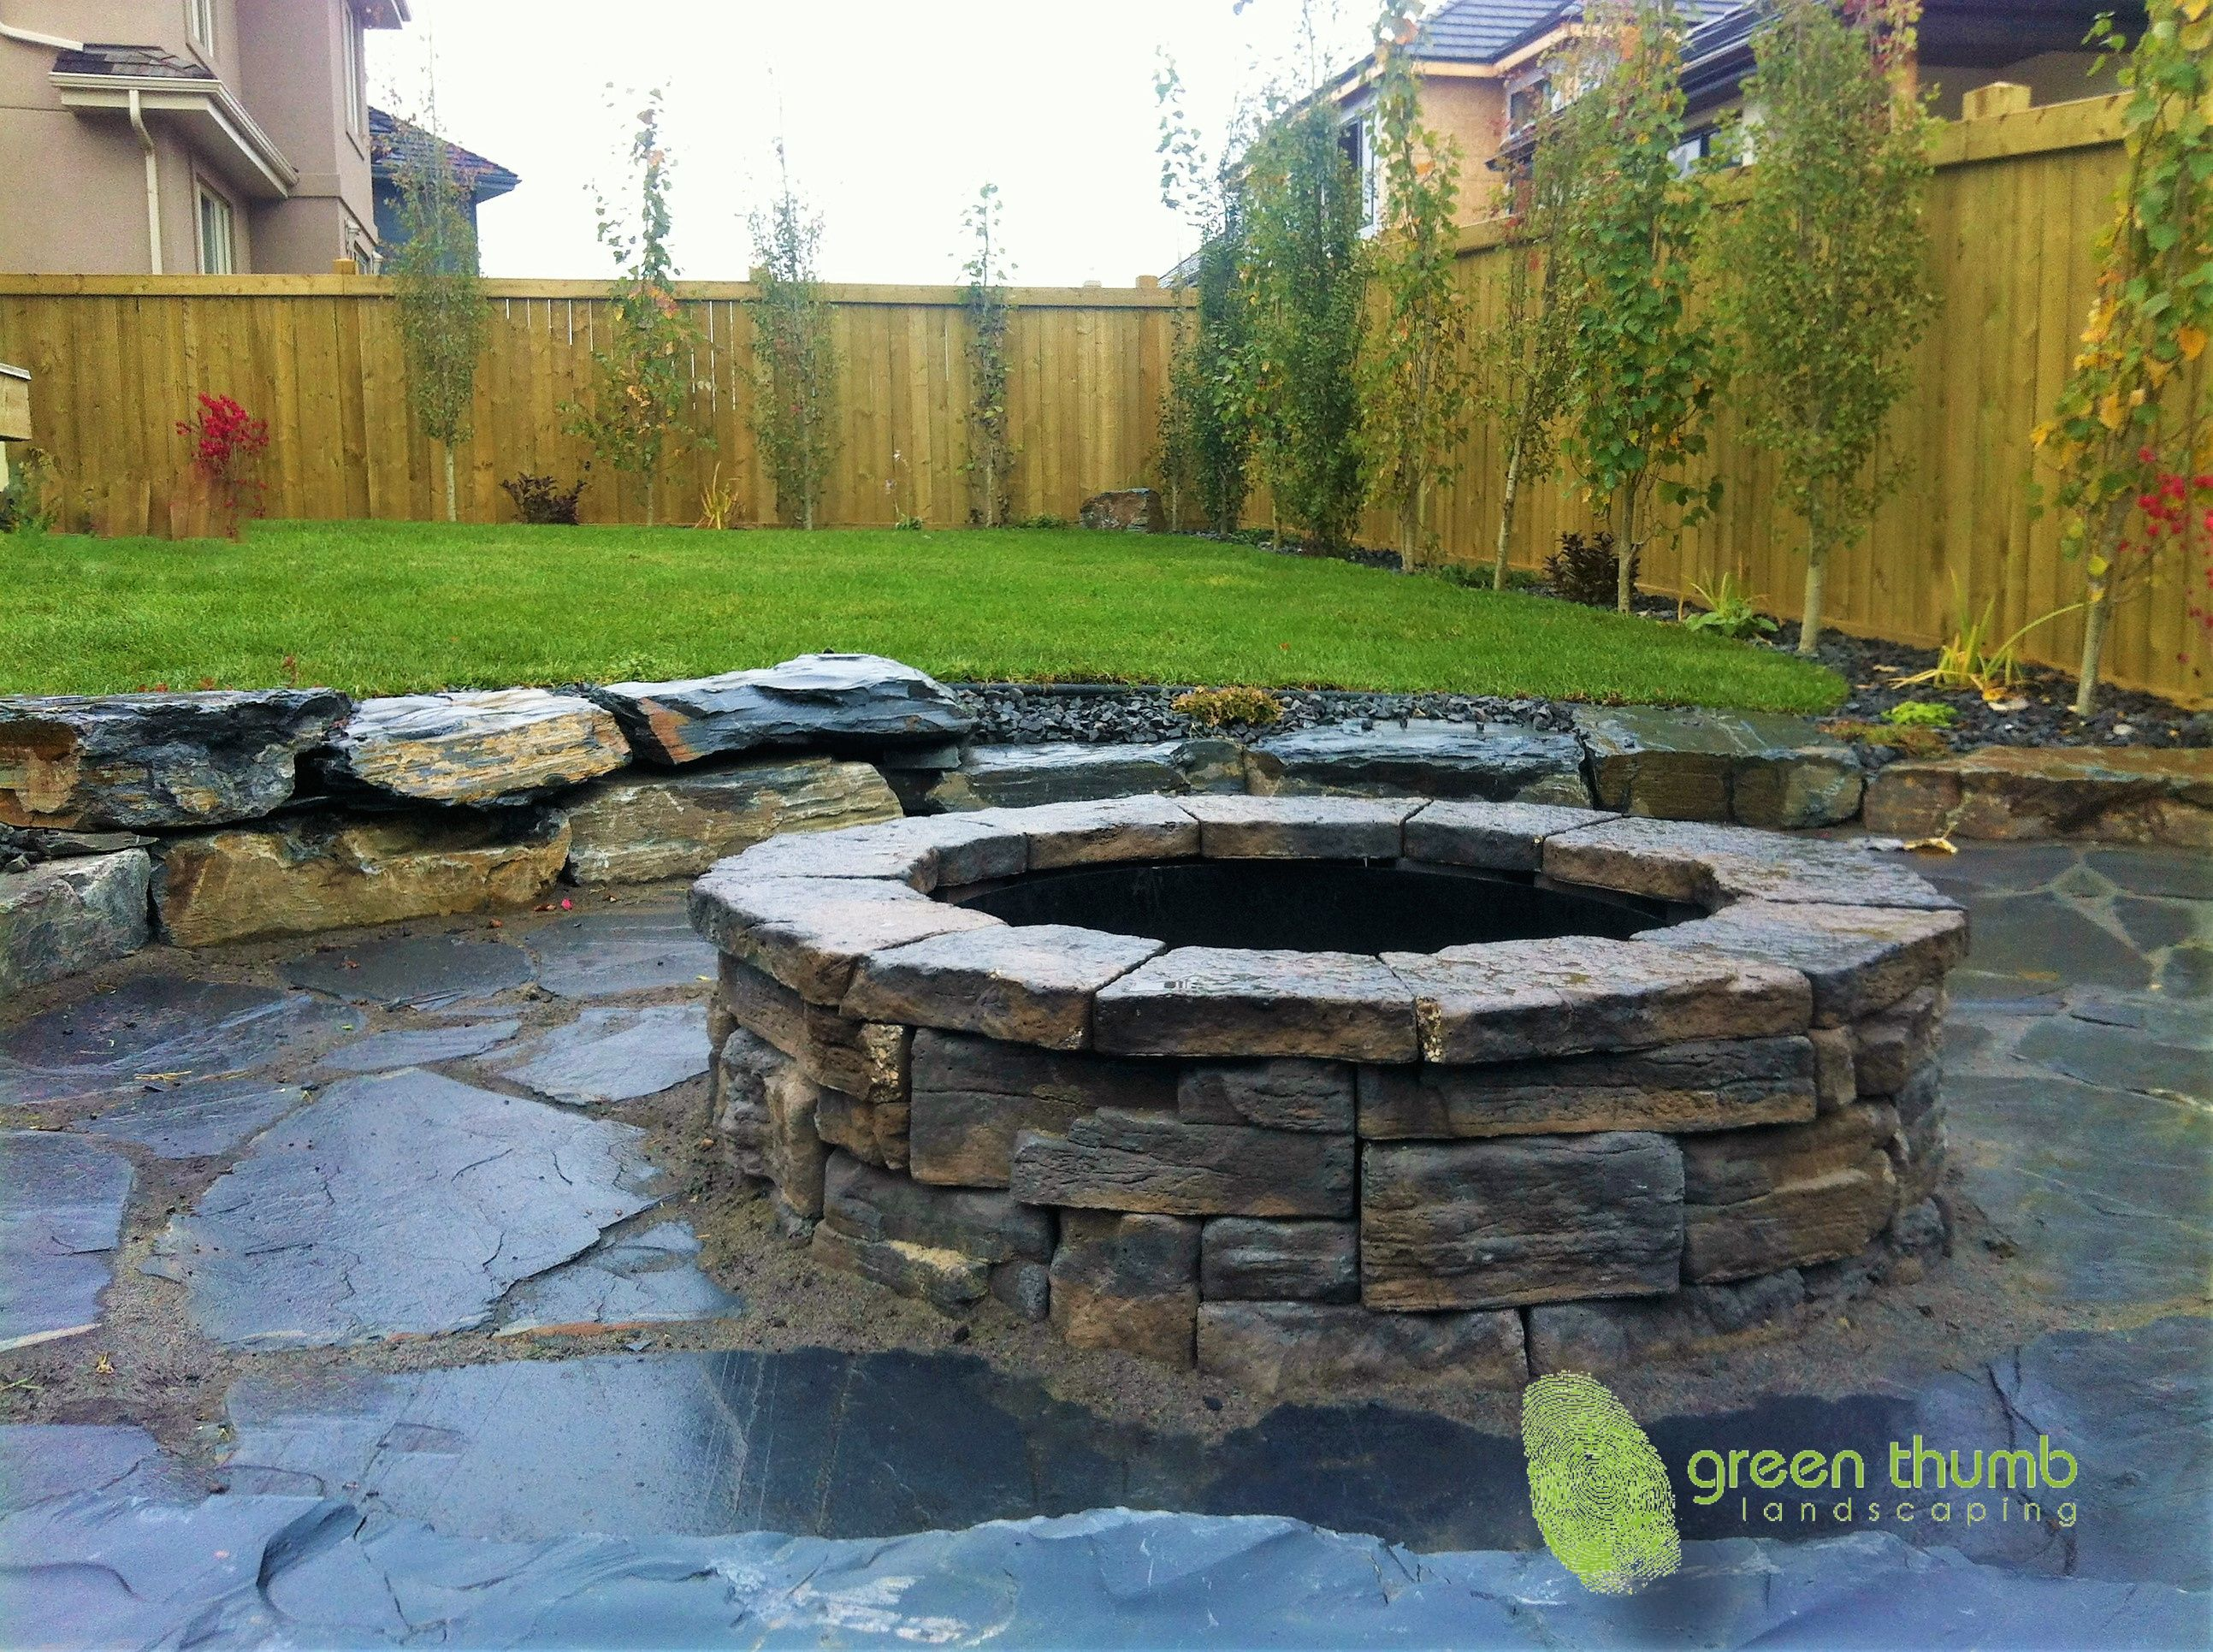 Retaining Wall Seating This Yard Was On A Steep Slope So We Made A Sunken Fire Pit Area